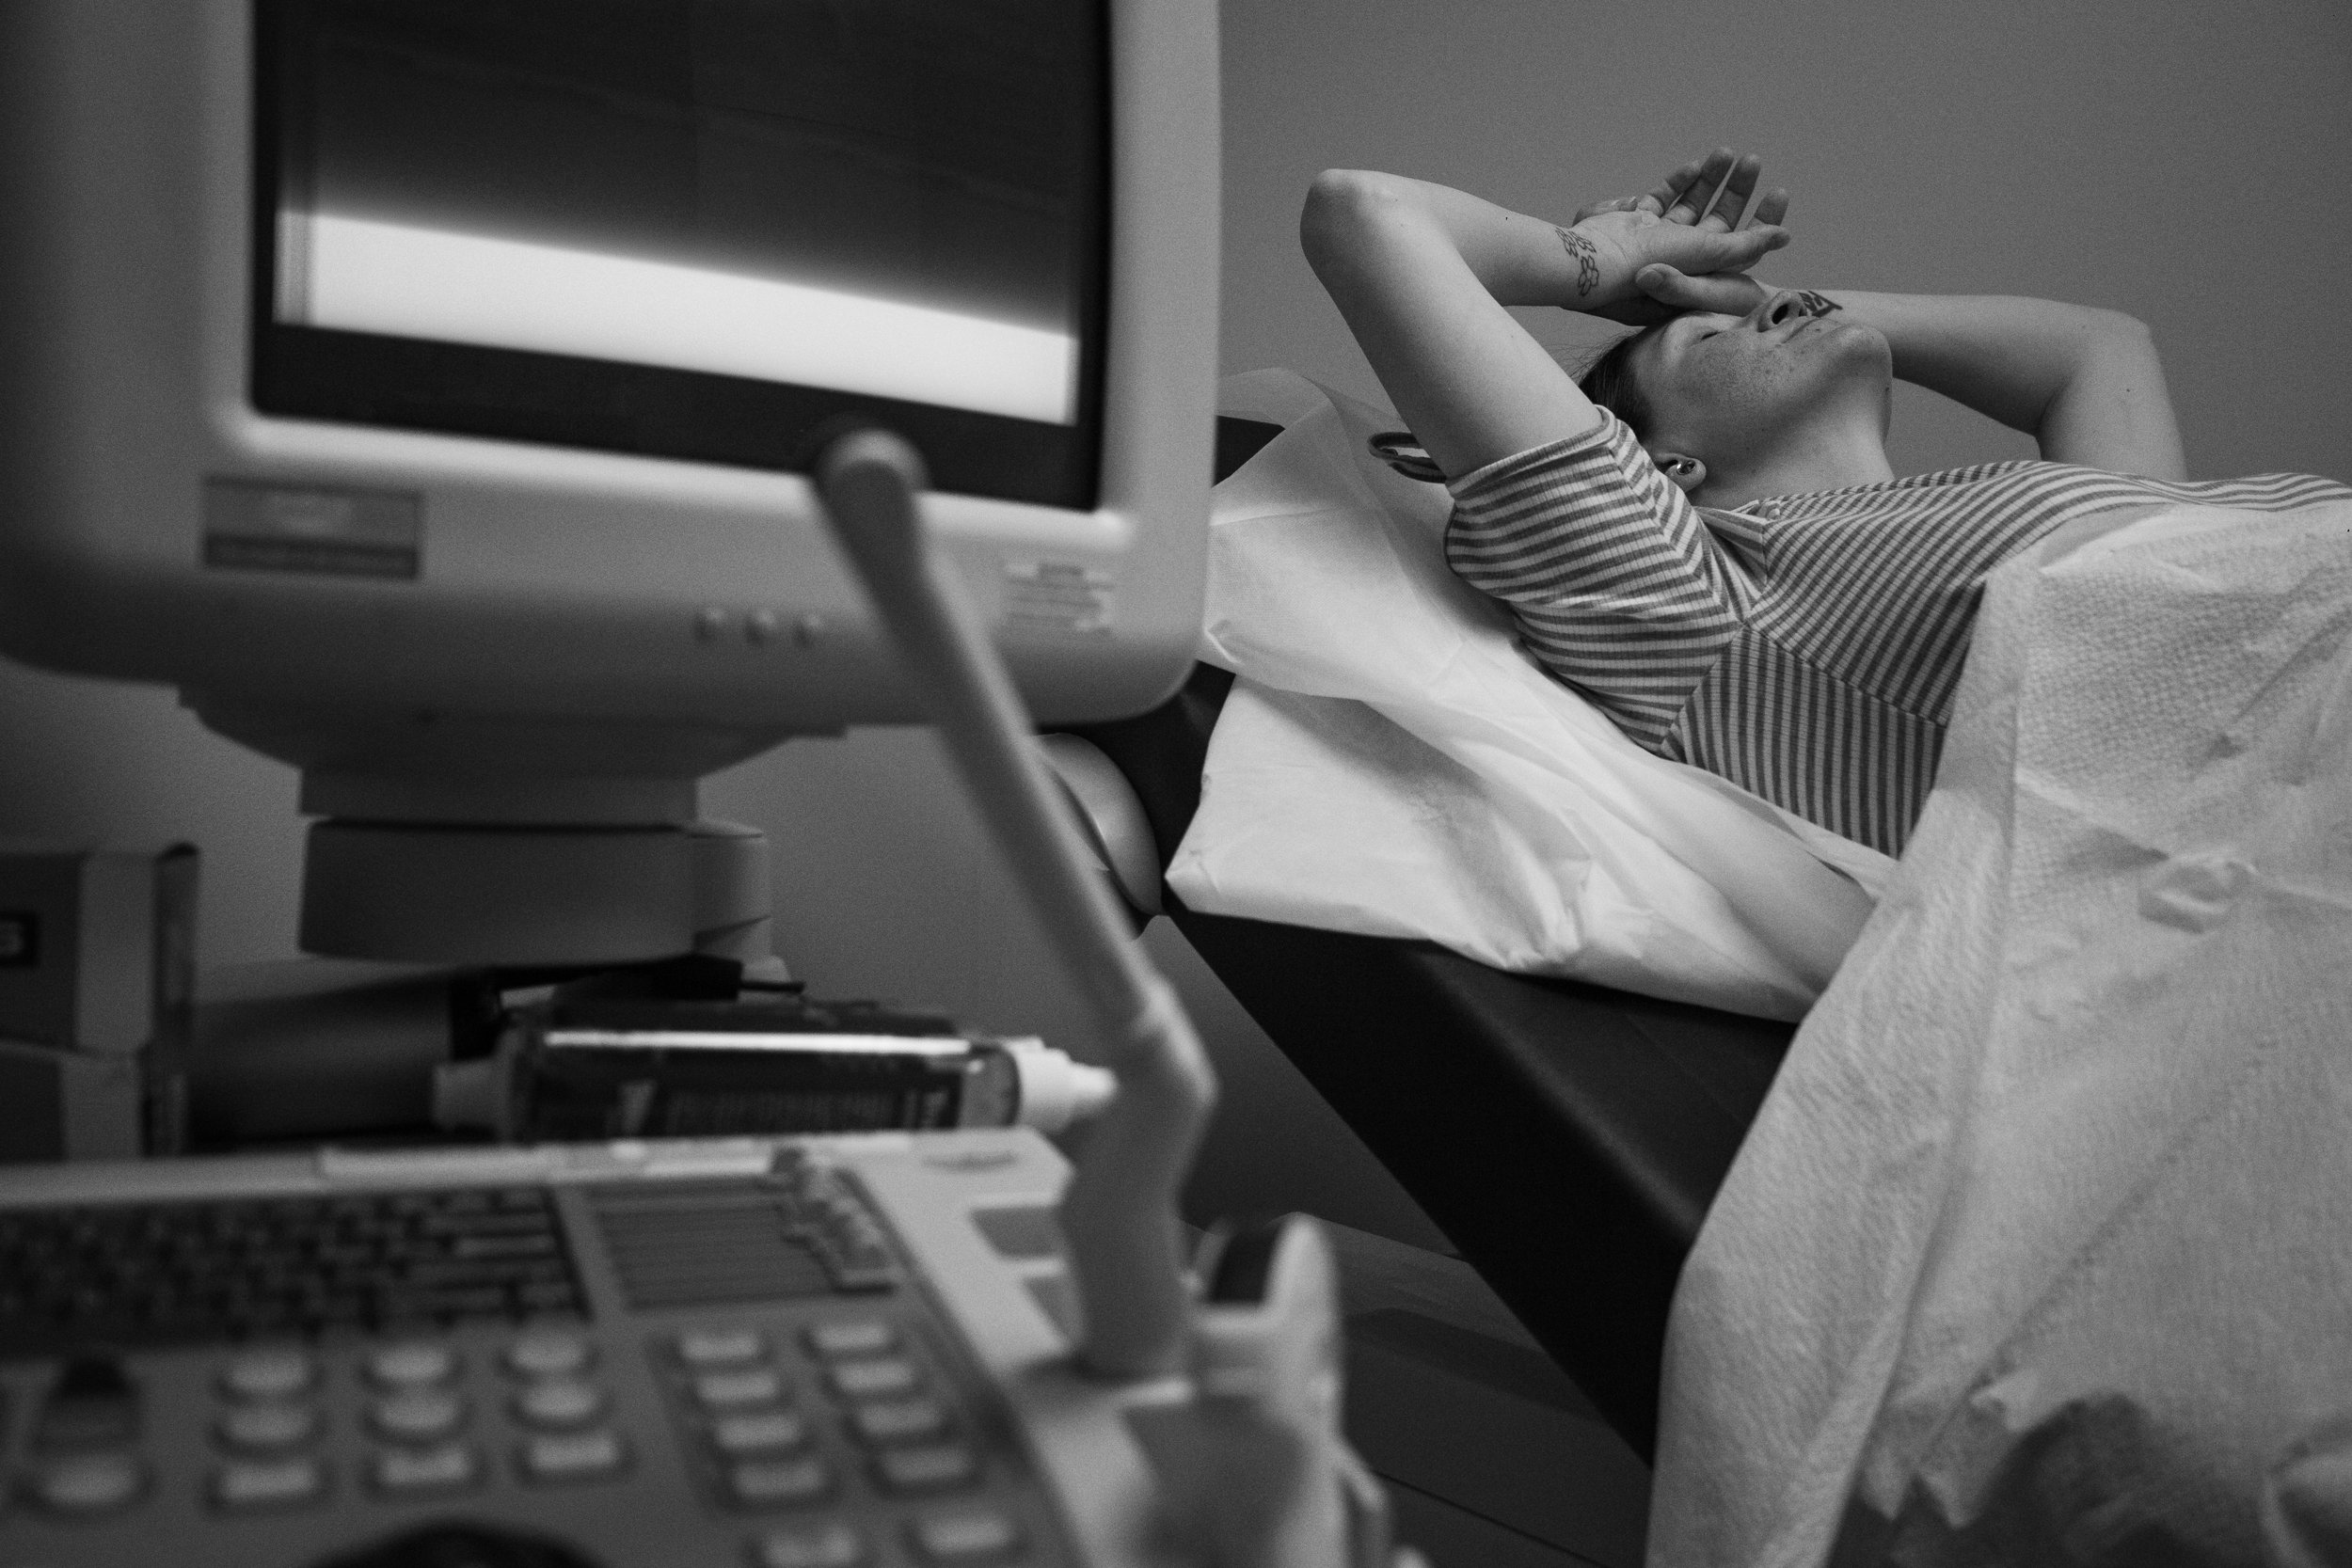 MARCH 28, 2019 | COURTNEY WAITS FOR HER DOCTOR TO EXAM HER 41 WEEK OLD BABY.